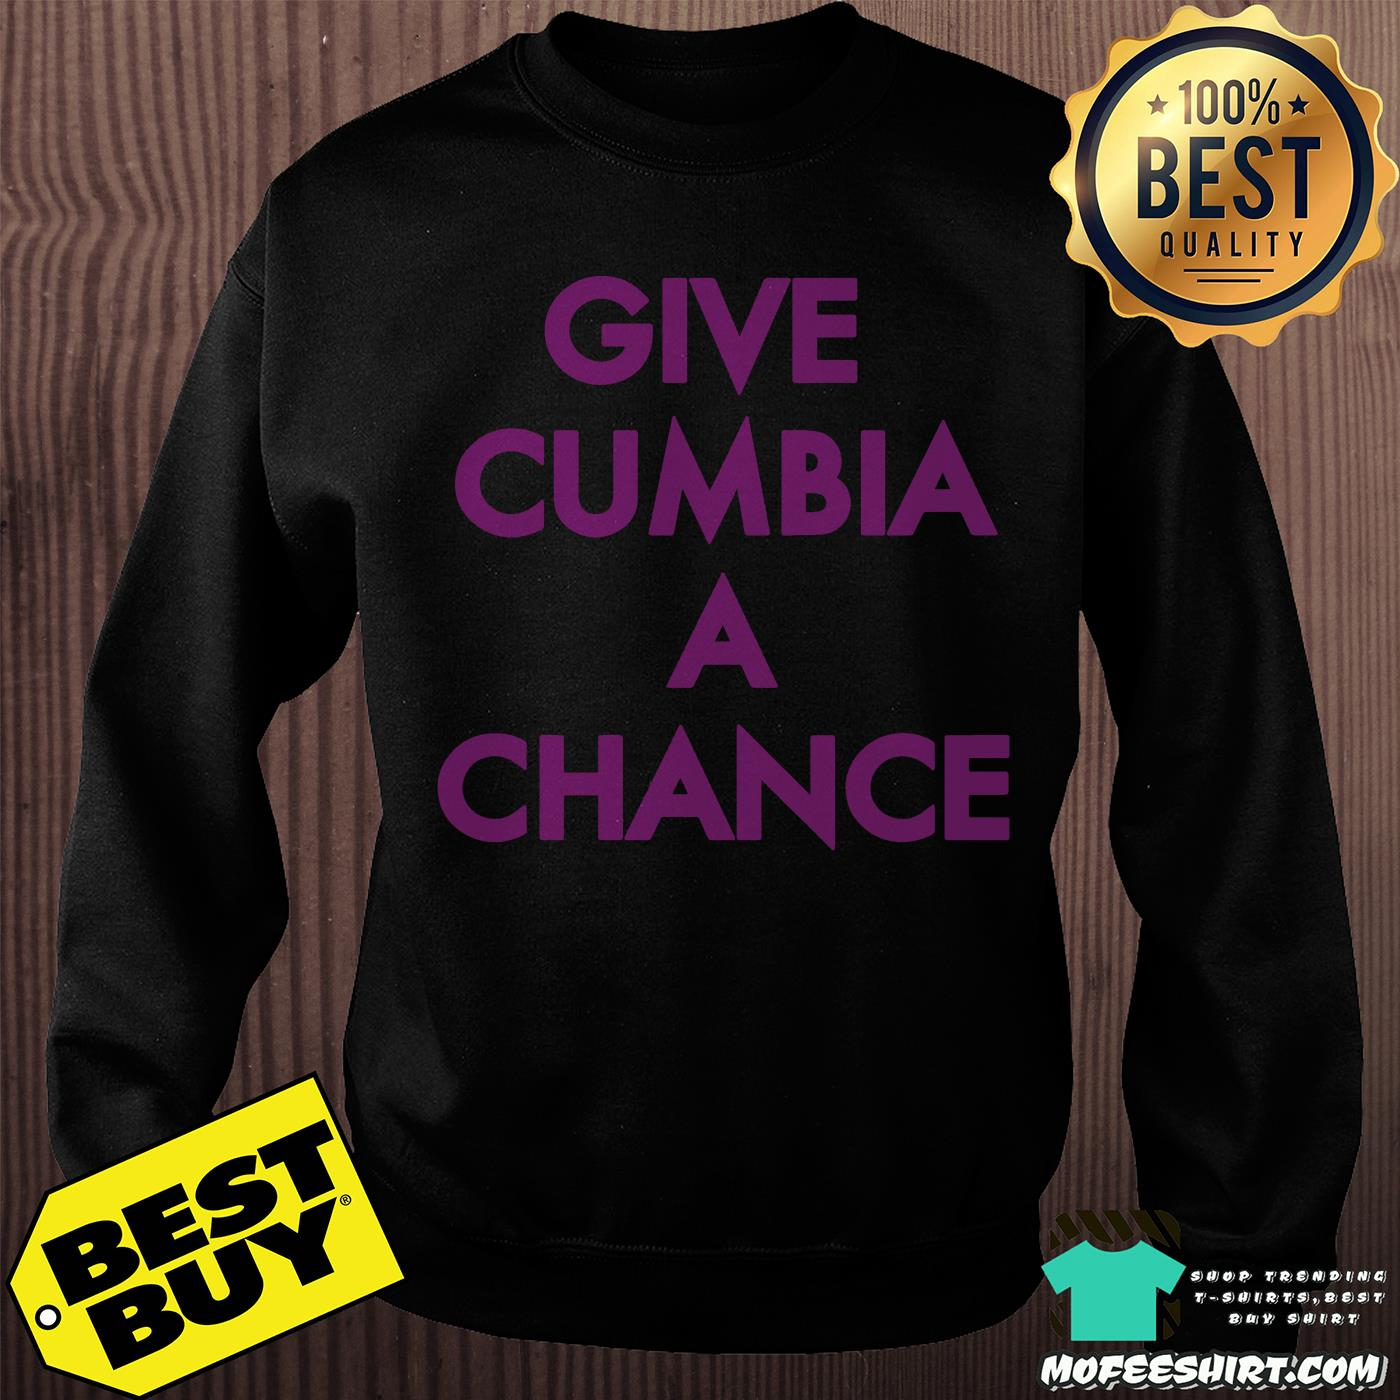 mexican institute of sound give cumbia a chance sweatshirt - Mexican Institute of Sound Give Cumbia a chance shirt